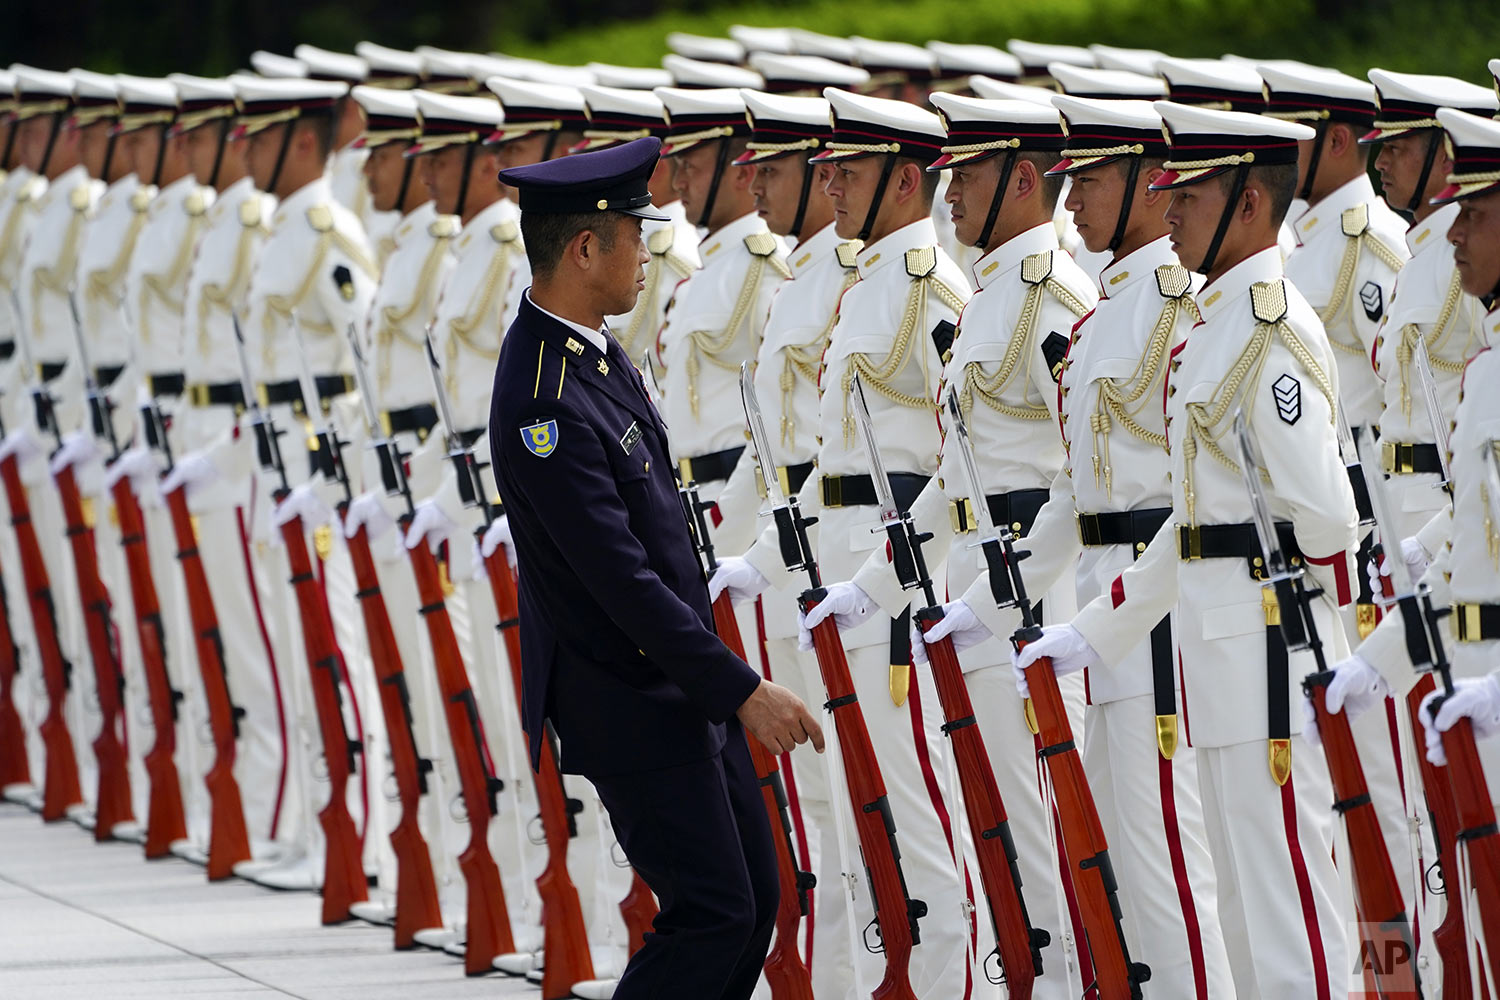 Japanese honor guard members prepare for an inspection by Prime Minister Shinzo Abe and Defense Minister Taro Kono ahead of the Japan Self-Defense Forces senior officers' gathering at Defense Ministry in Tokyo. (AP Photo/Eugene Hoshiko)